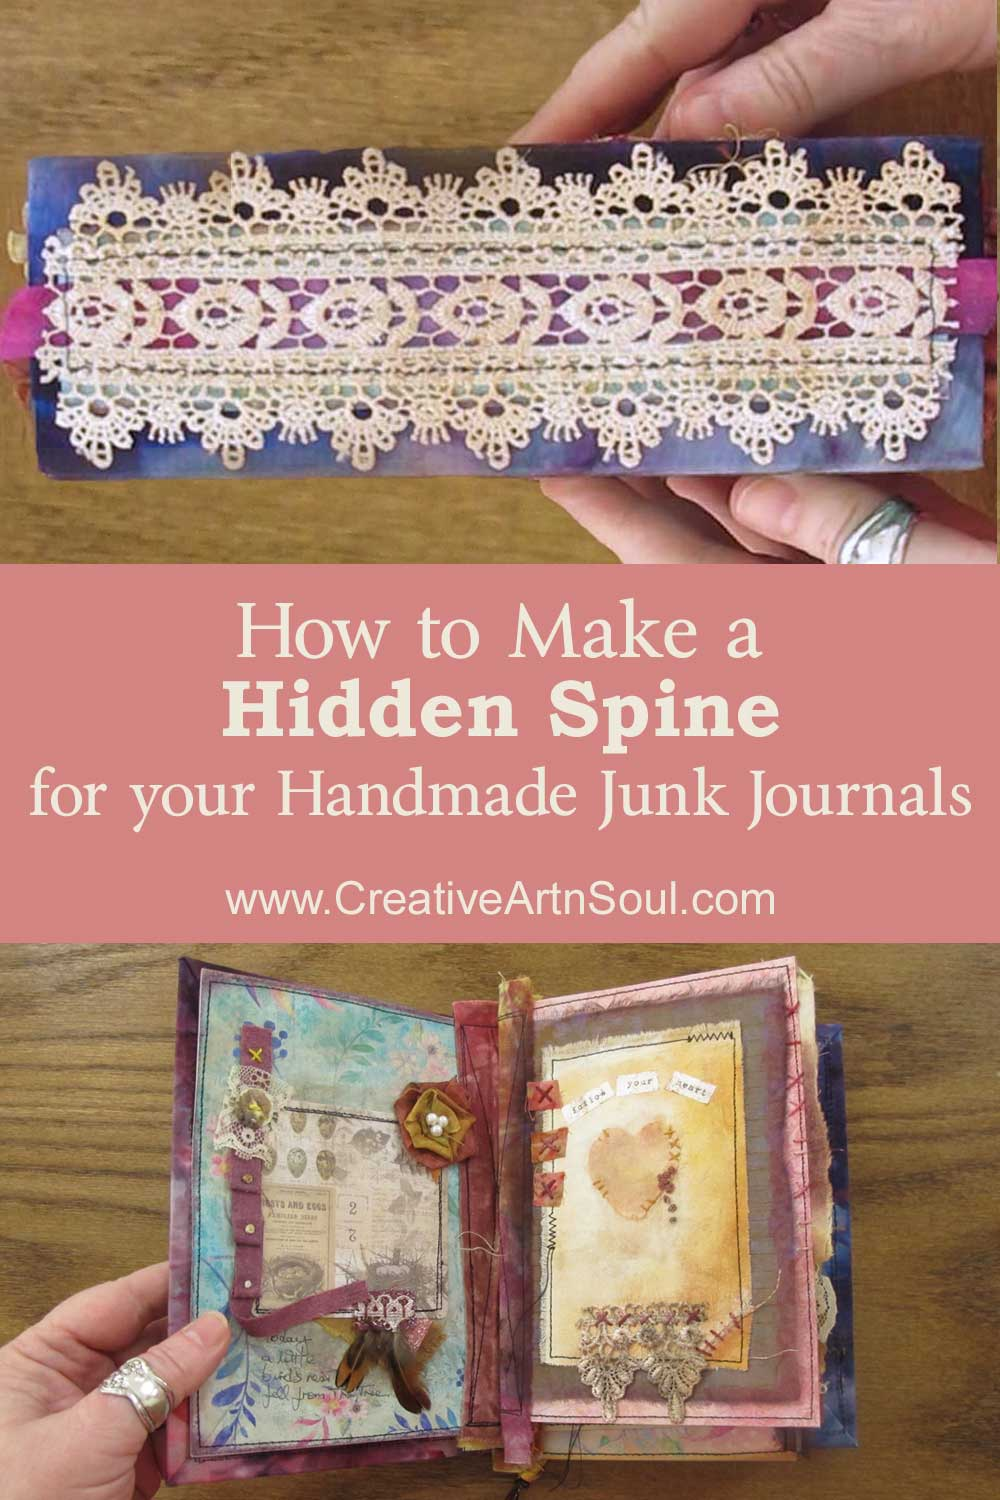 How to Make a Hidden Spine for your Handmade Junk Journals